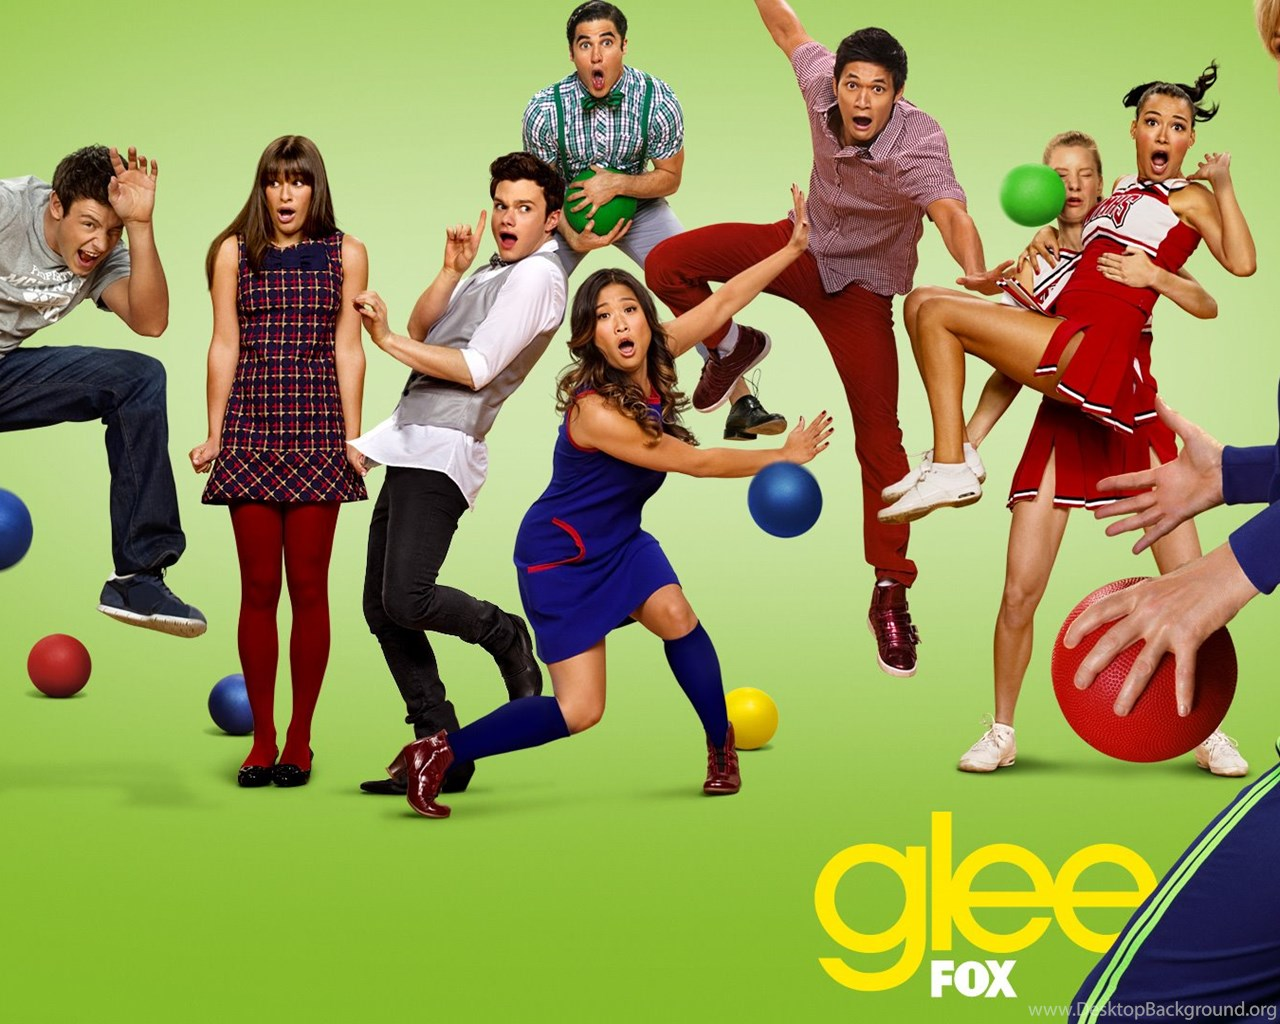 60 glee hd wallpapers desktop background widescreen voltagebd Image collections